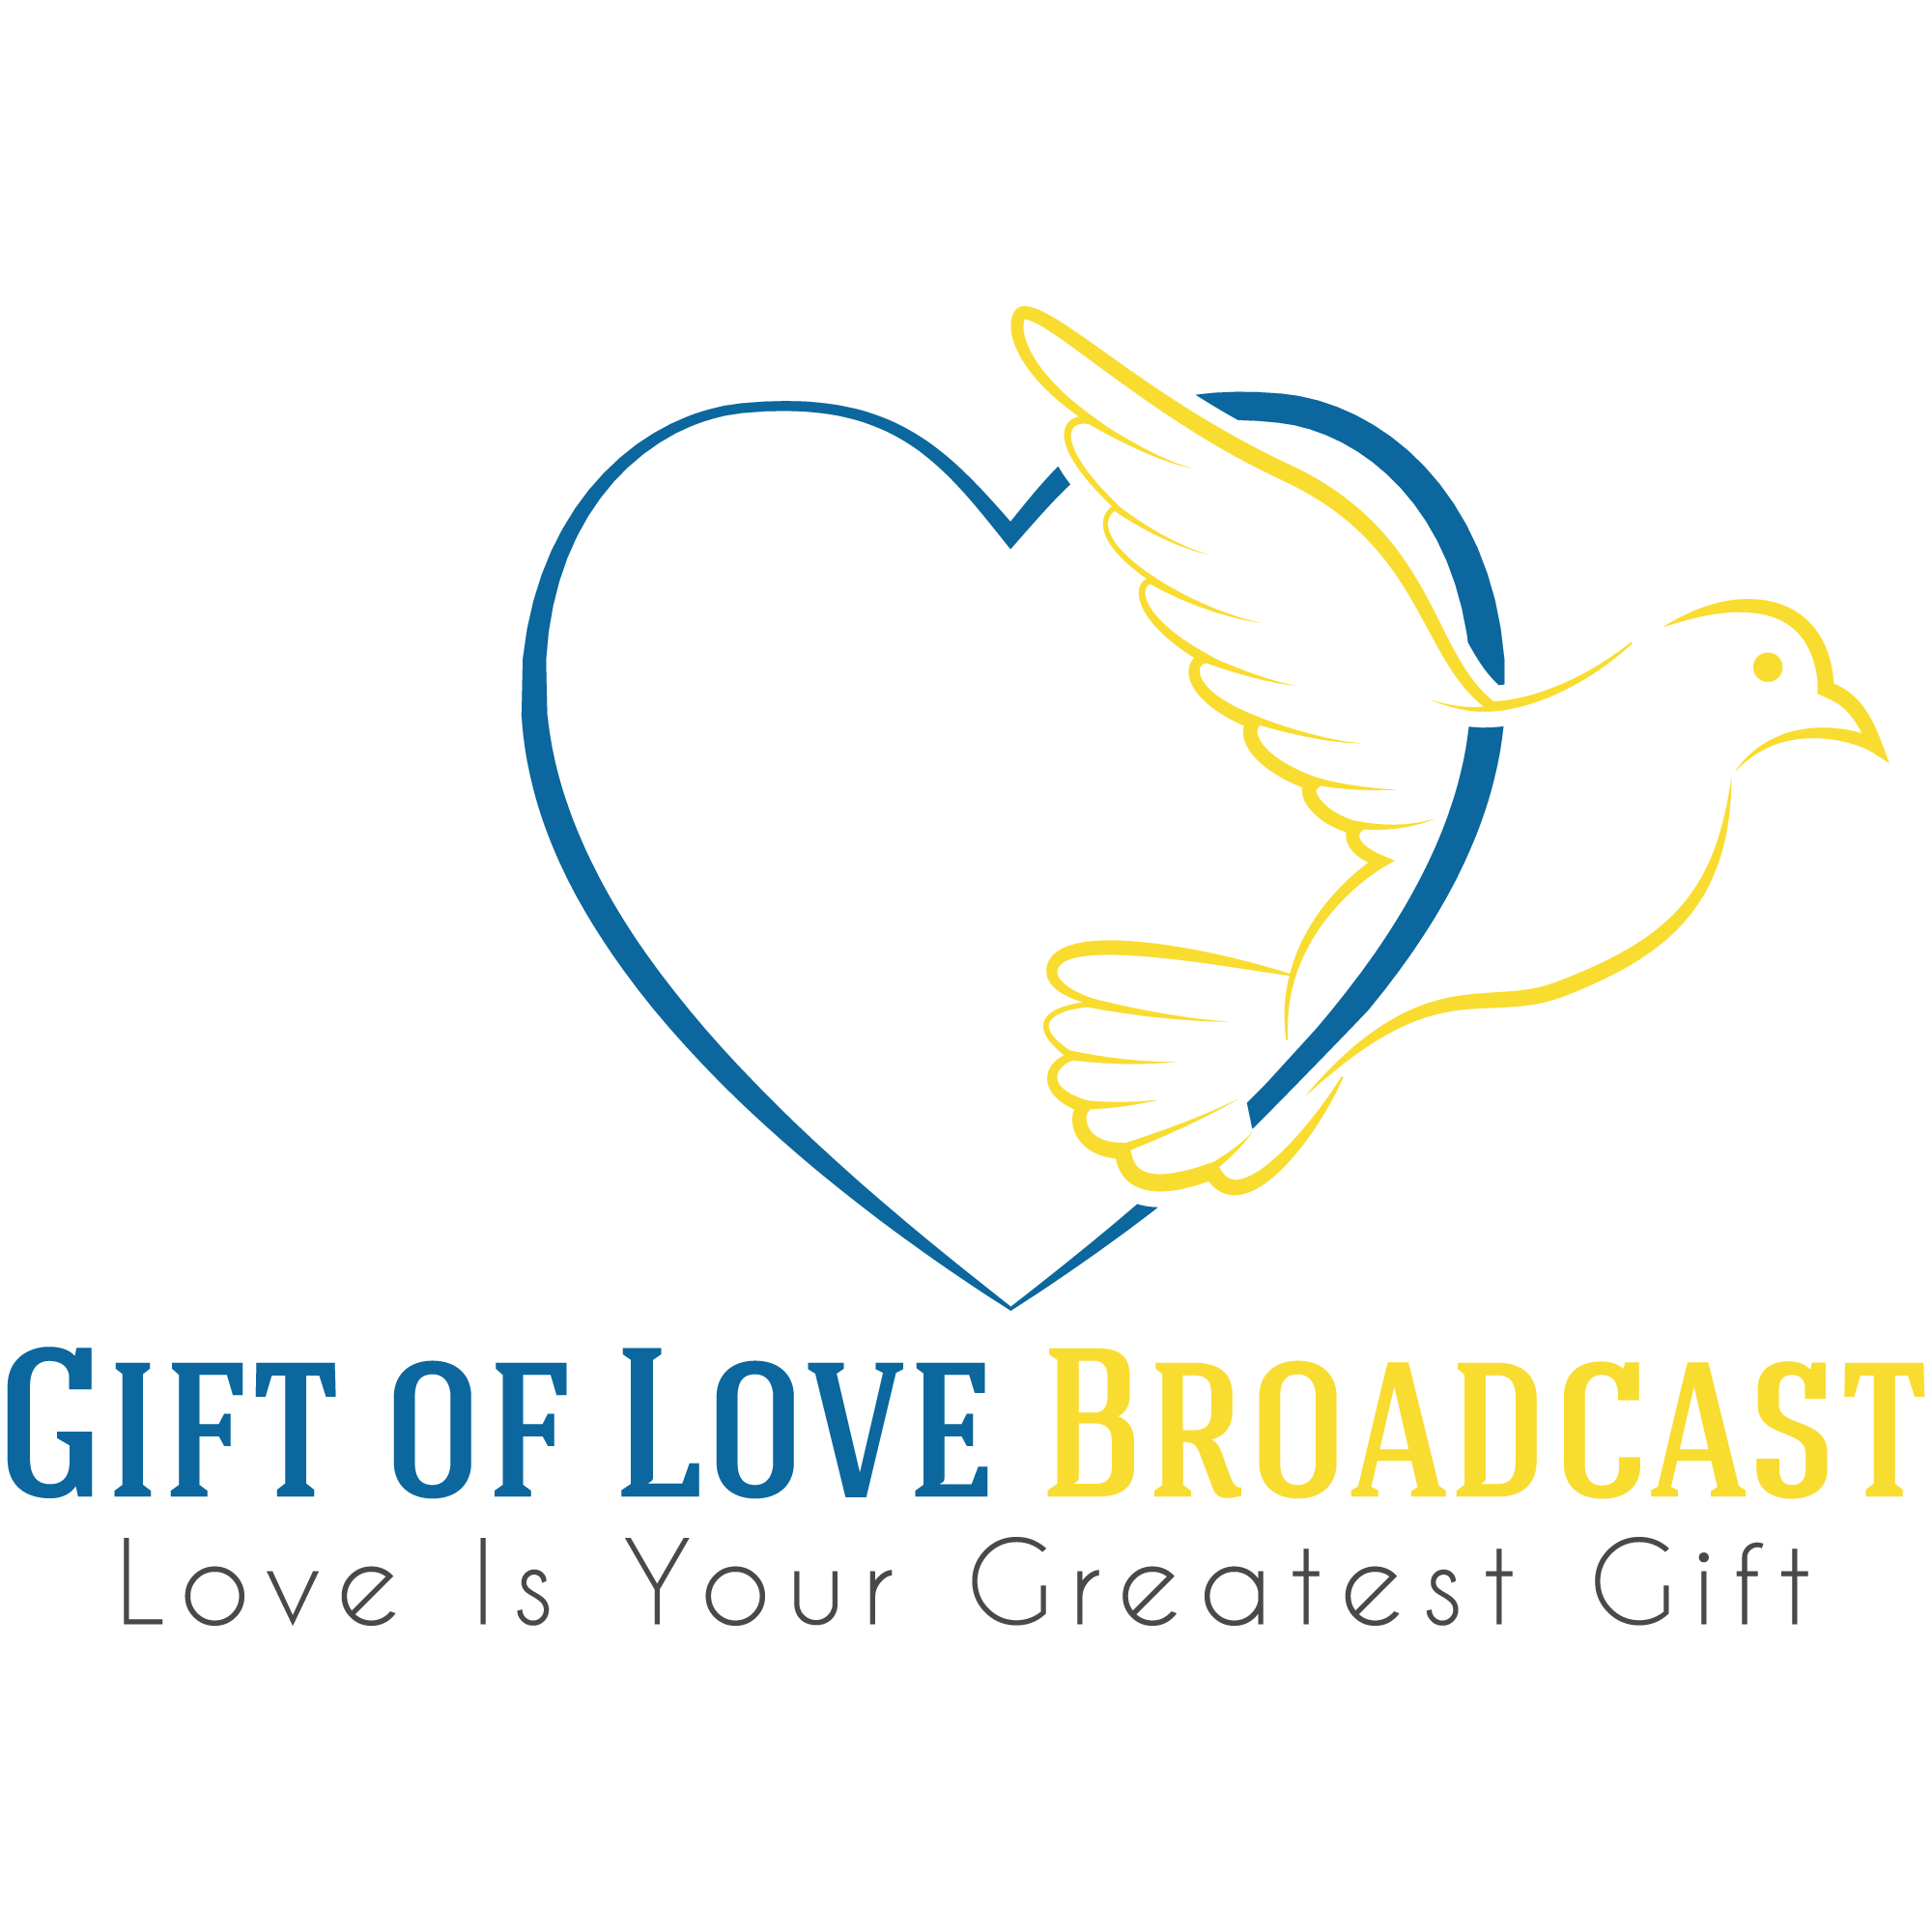 Episode 1: Love Is Your Greatest Gift